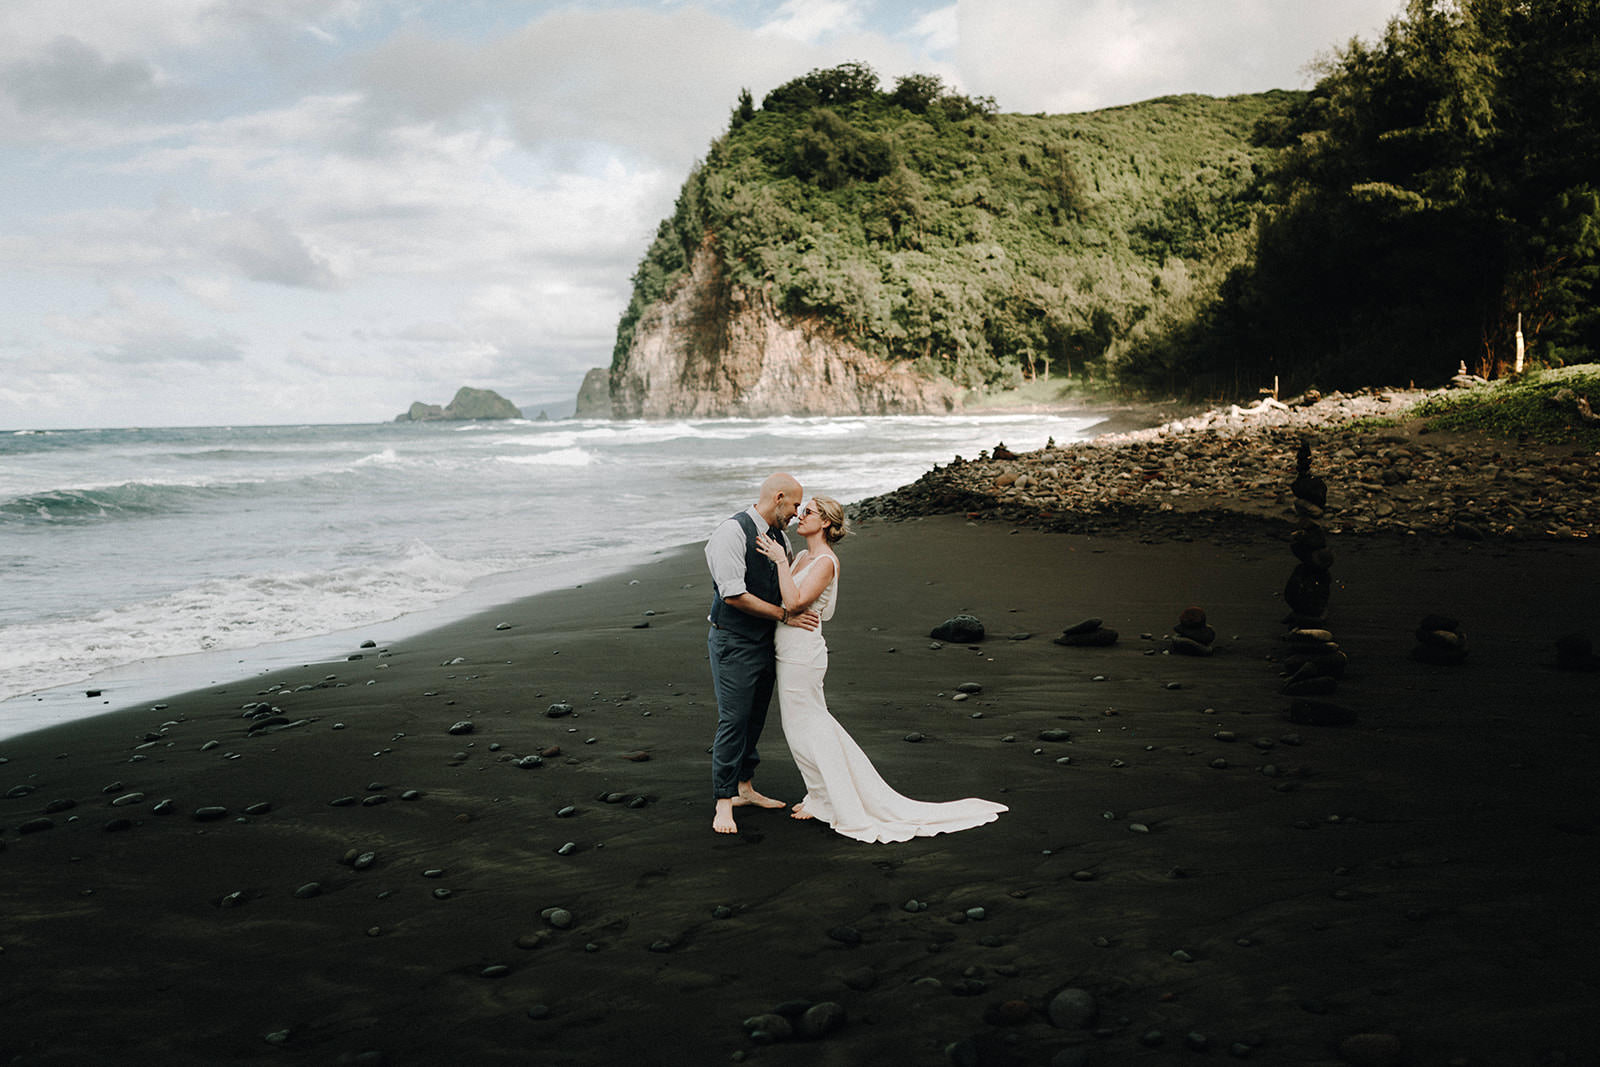 pololu valley, hawaii, big island, hawaii vacation, hawaii vacation package, hawaii wedding, big island elopement, hawaii wedding packages, hawaiian wedding, getting marriend in hawaii, hawaii beach wedding, hawaii elopement package, elope in hawaii, big island photographer, hawaii wedding photographer